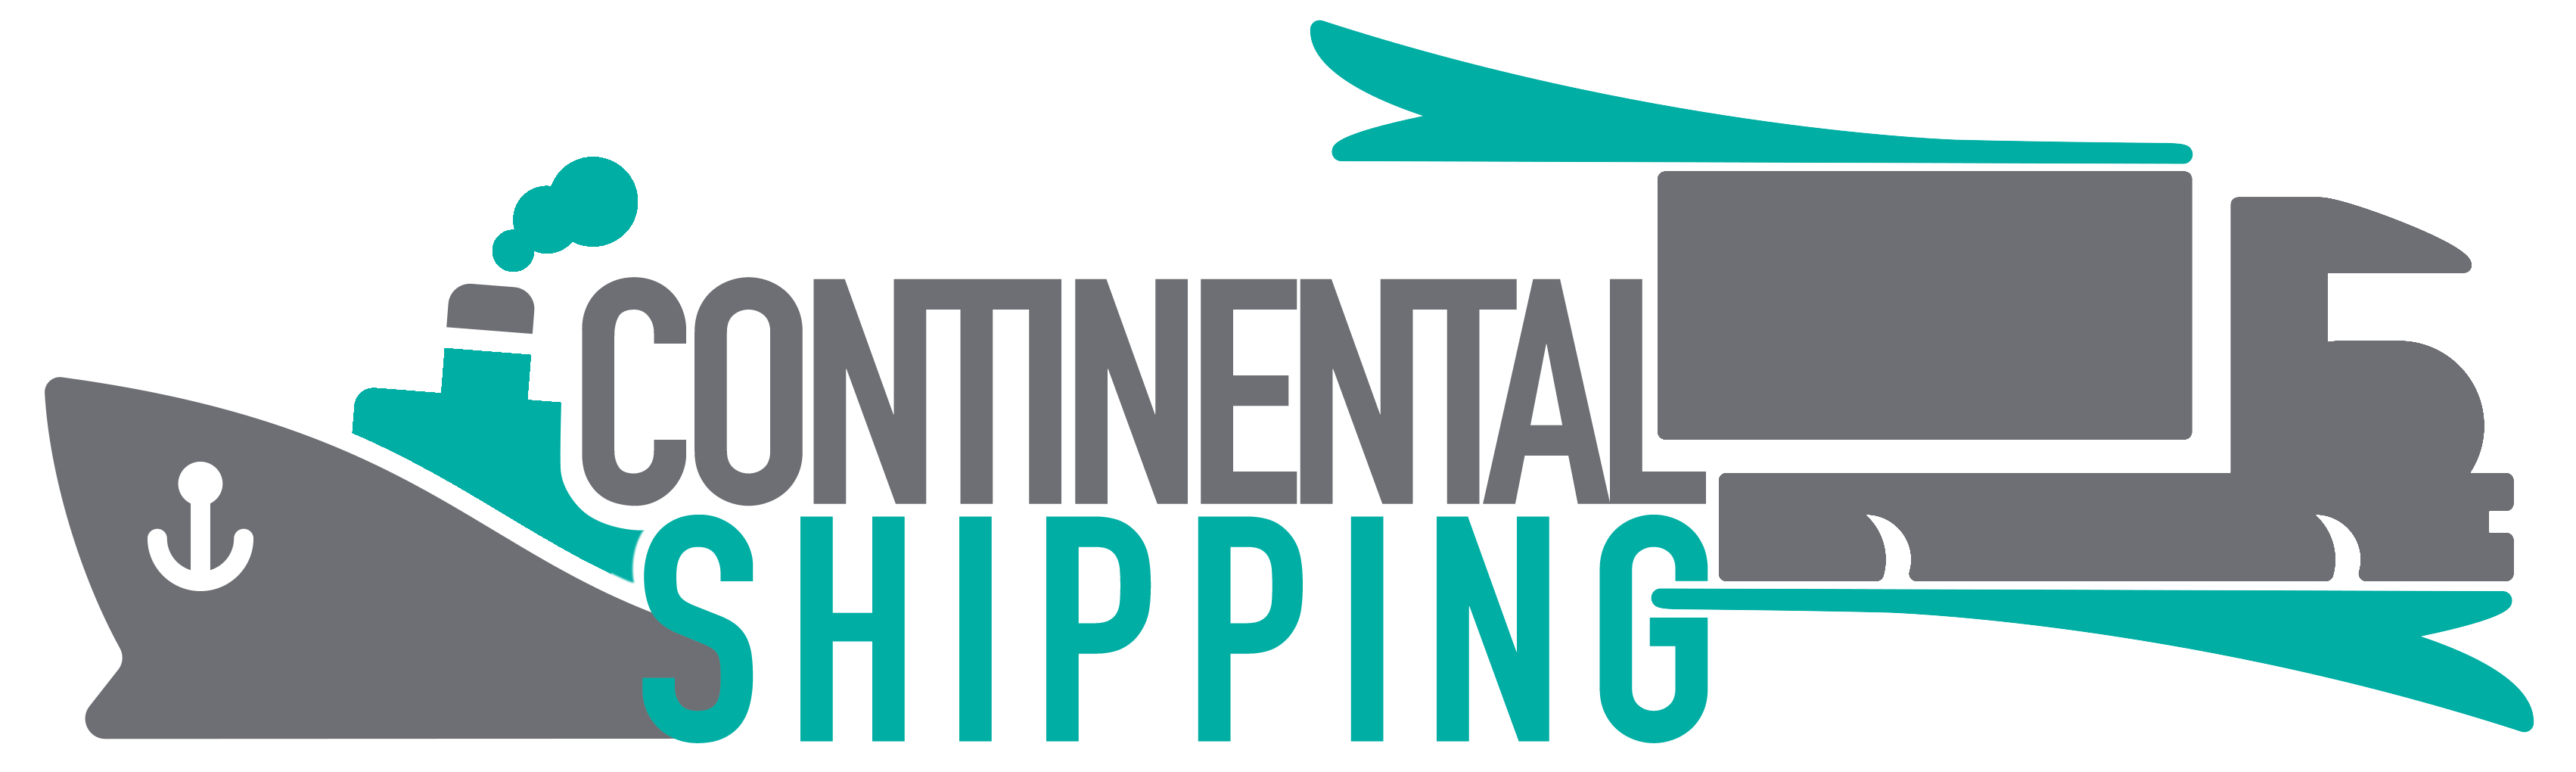 CONTINENTAL Shipping